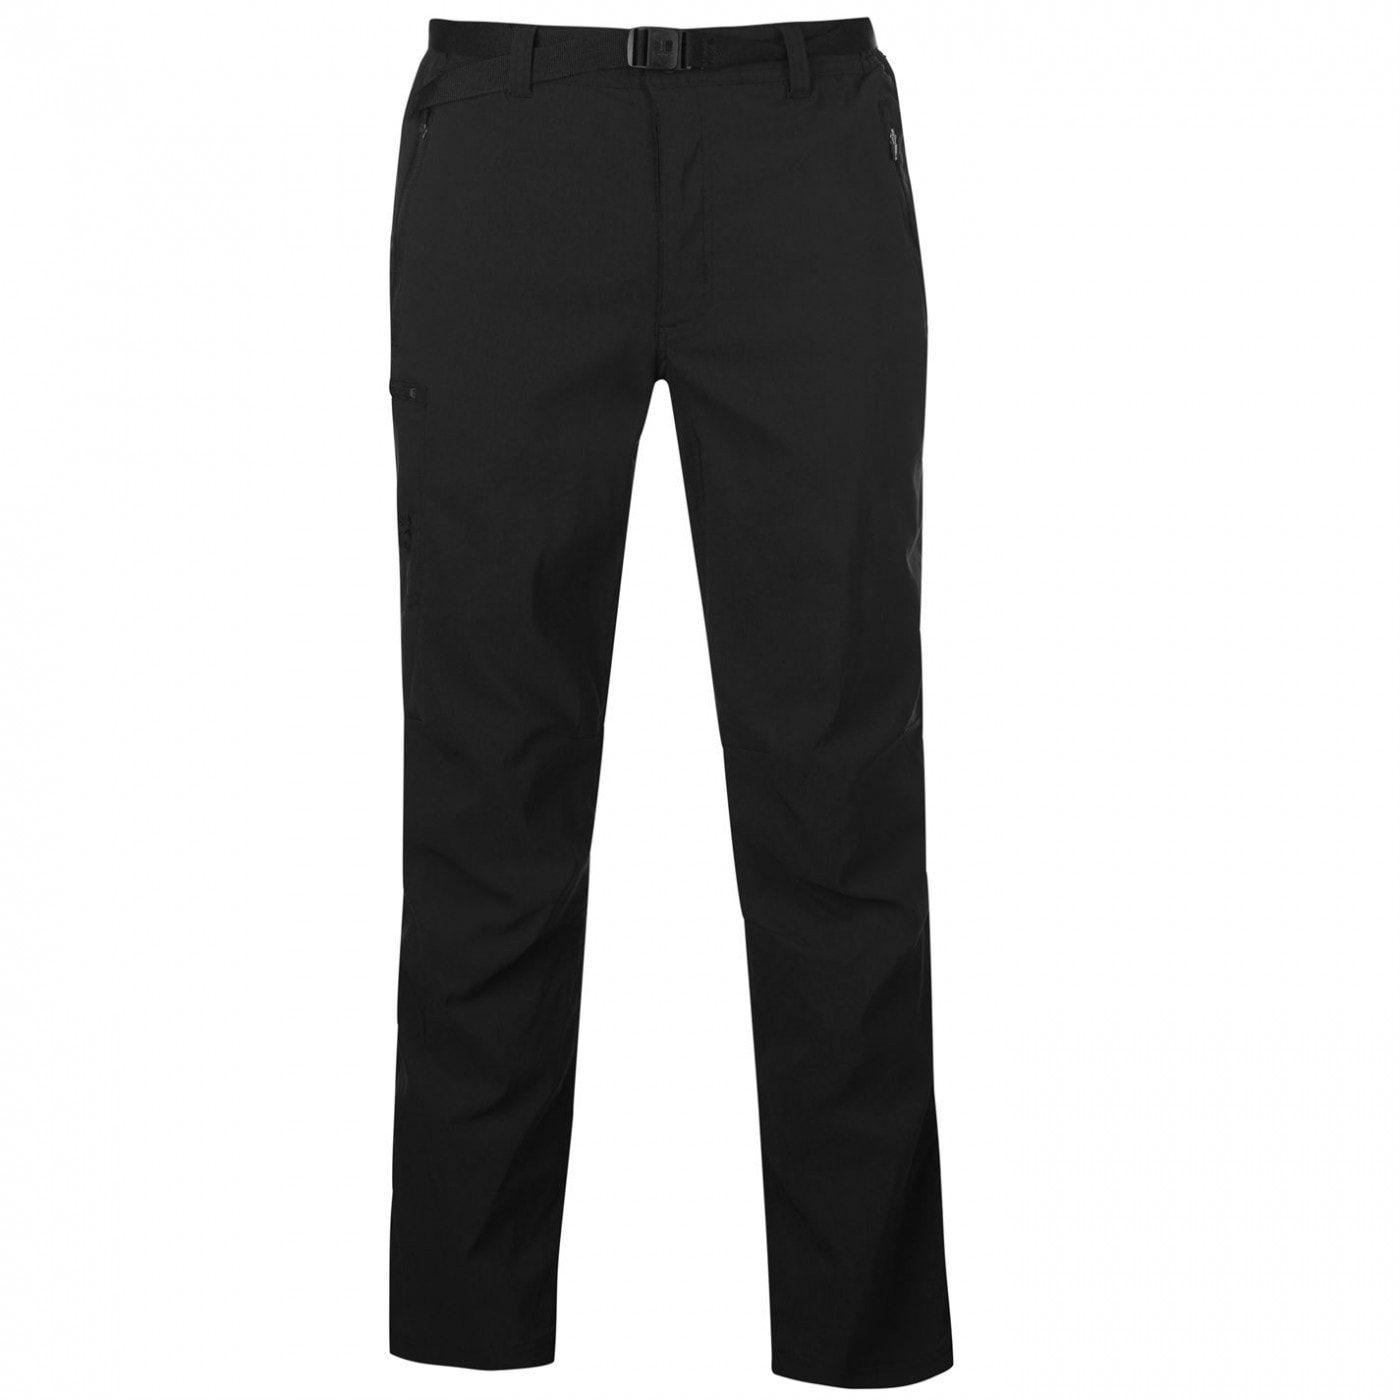 Karrimor Panther Winter Trousers Mens